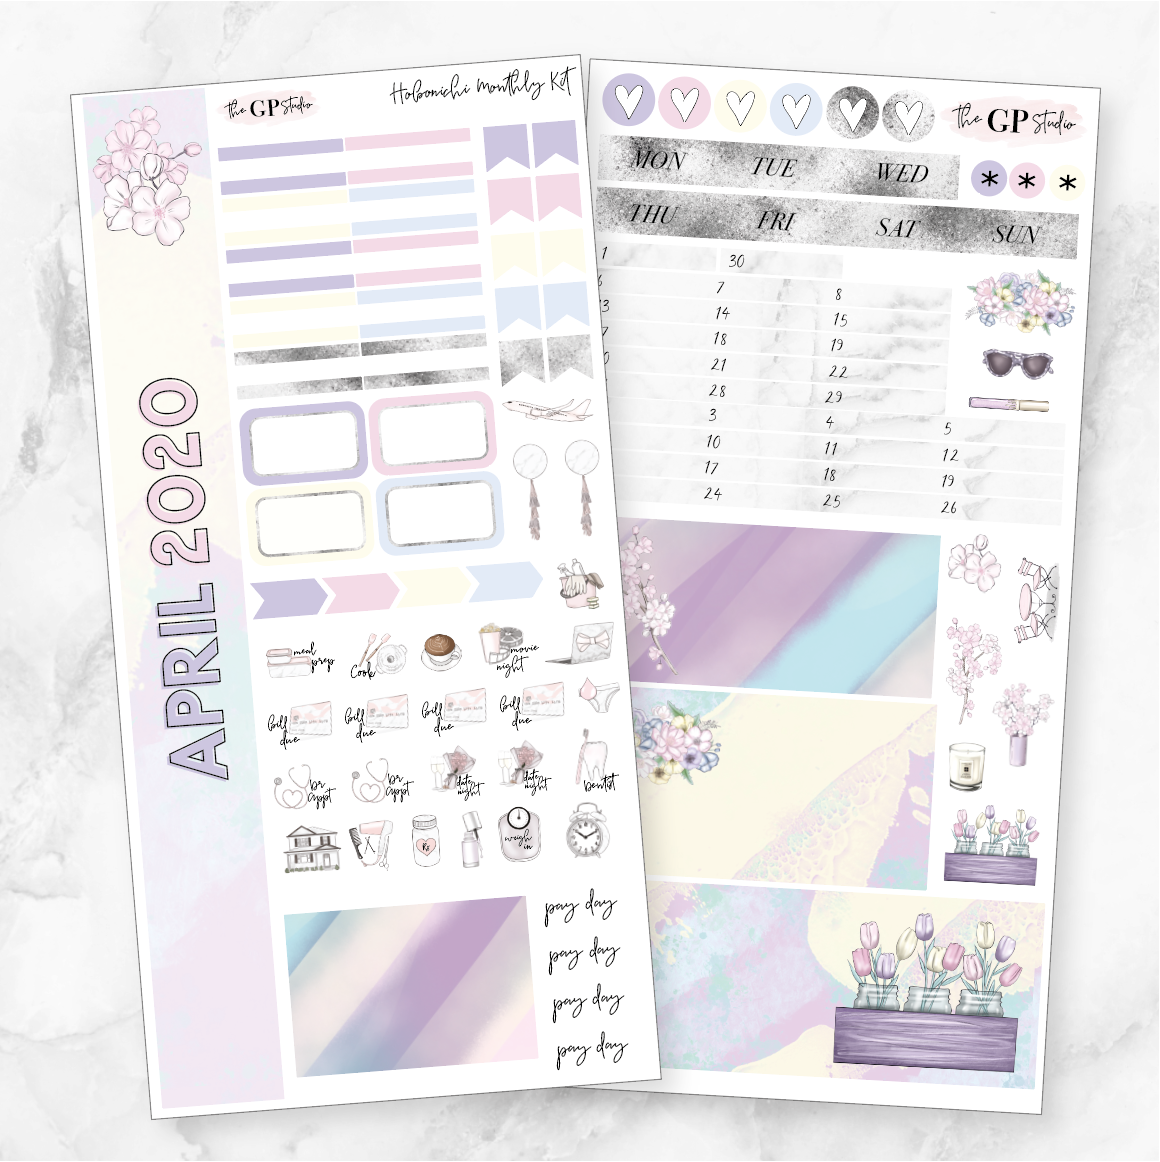 APRIL 2020 MONTHLY Sticker Kit Hobonichi Week's Size-The GP Studio